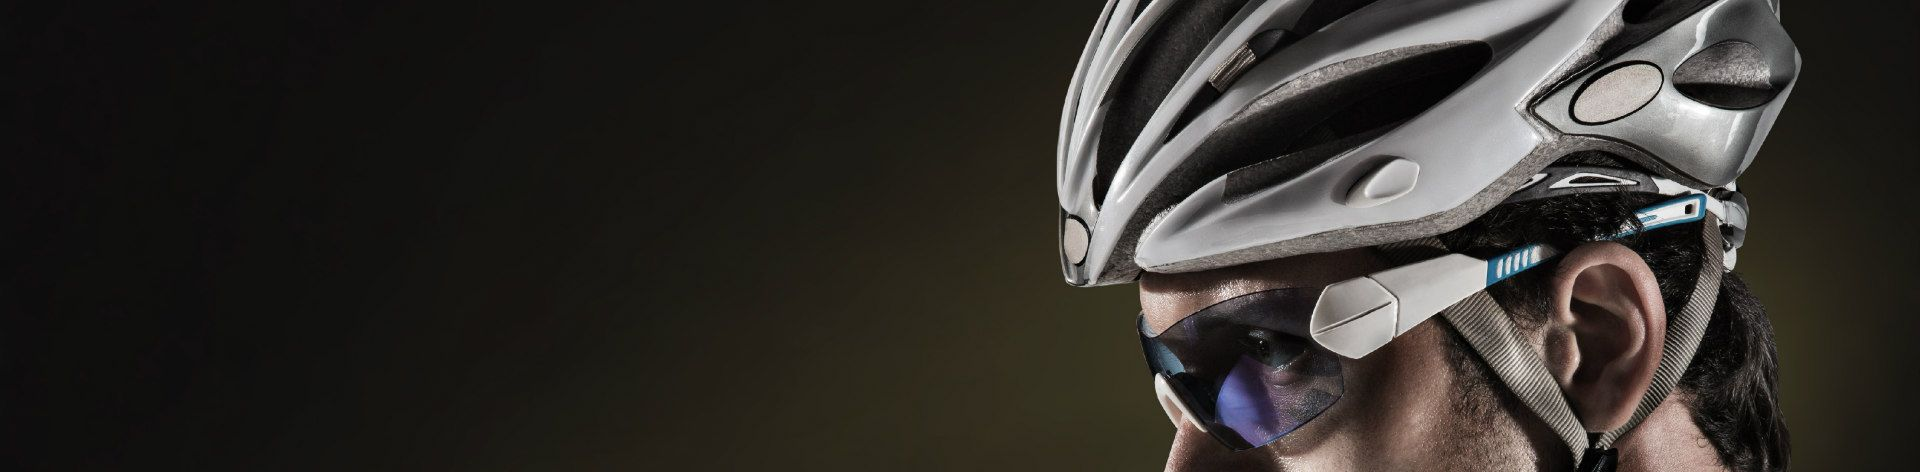 Van Eyck Sport cycling glasses outlet